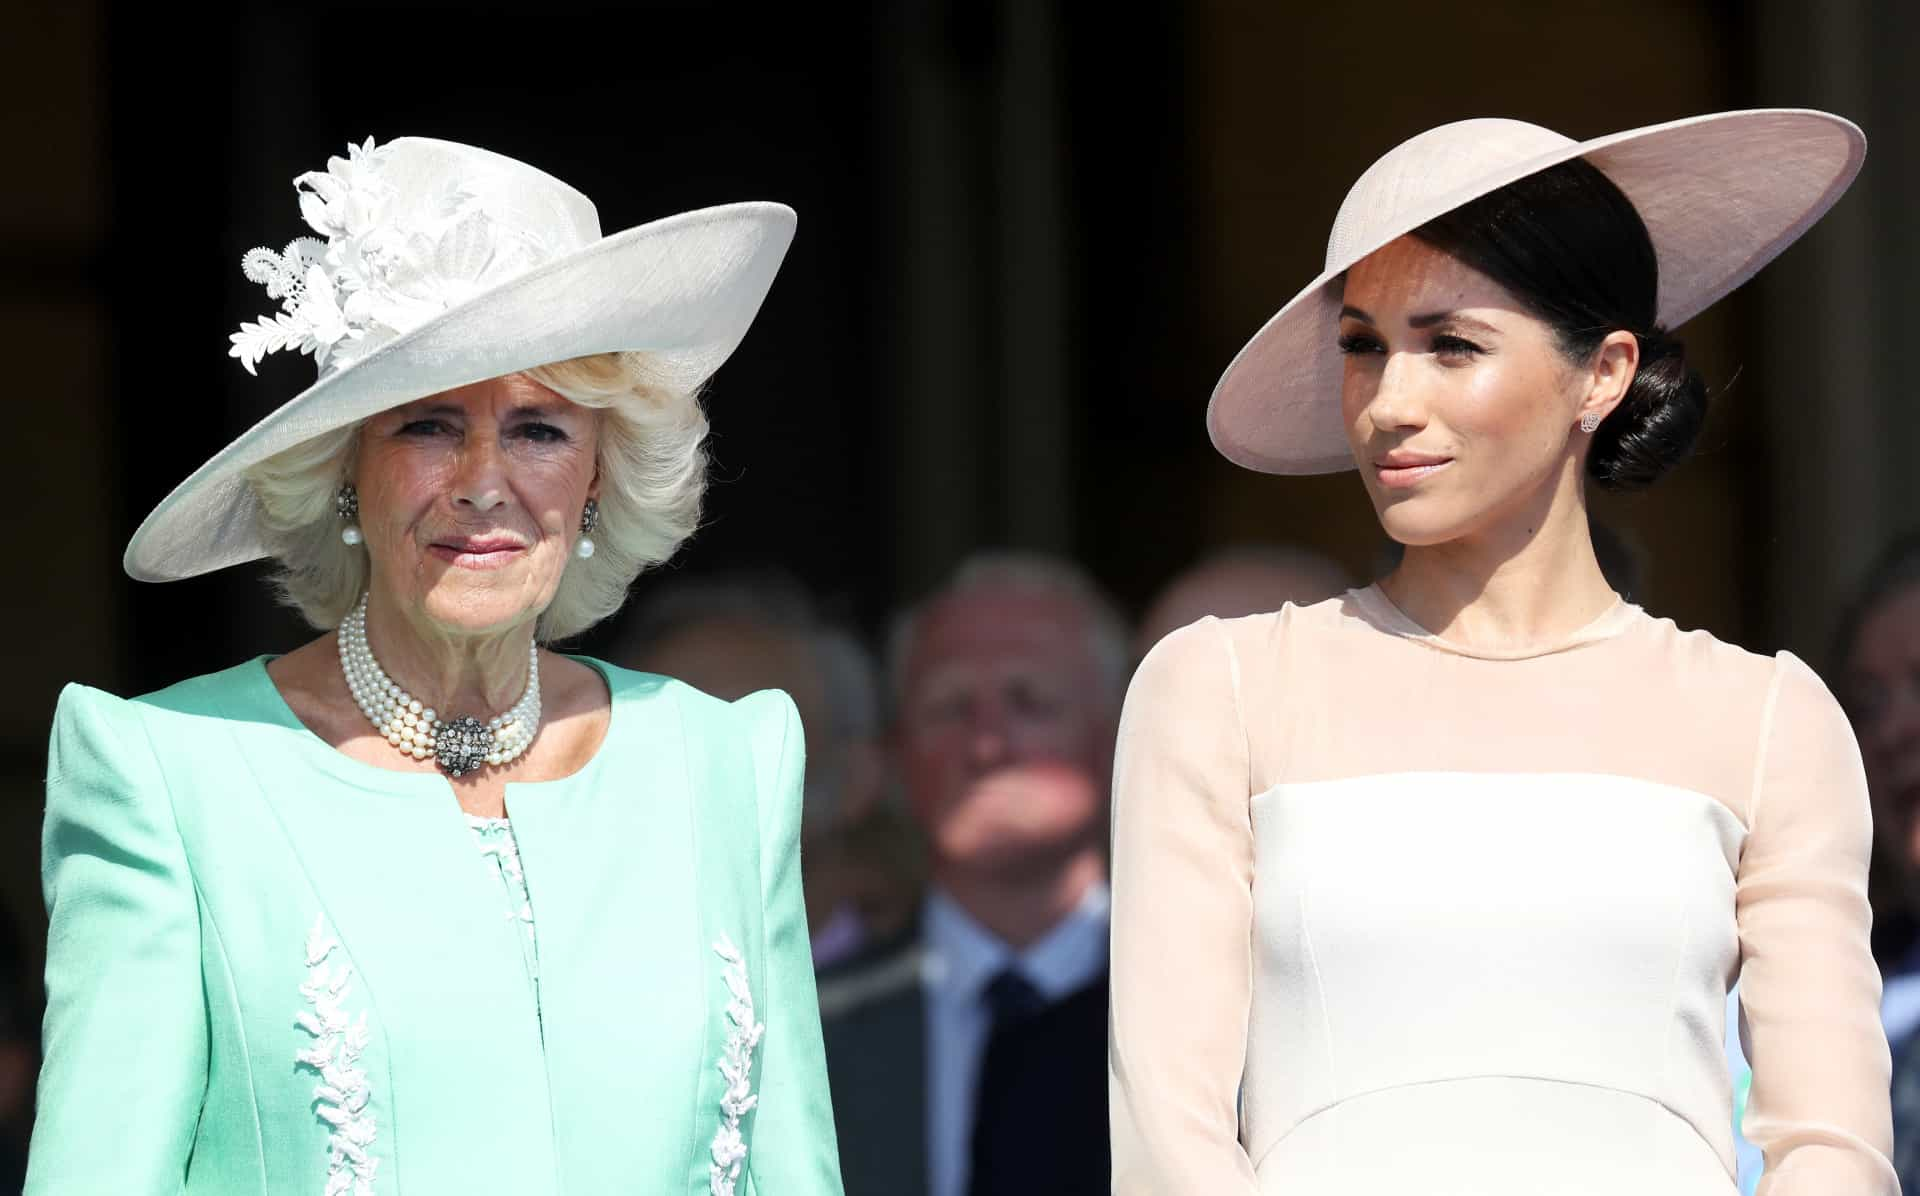 Príncipe Harry e Meghan Markle 'adiam' lua de mel e comparecem em evento